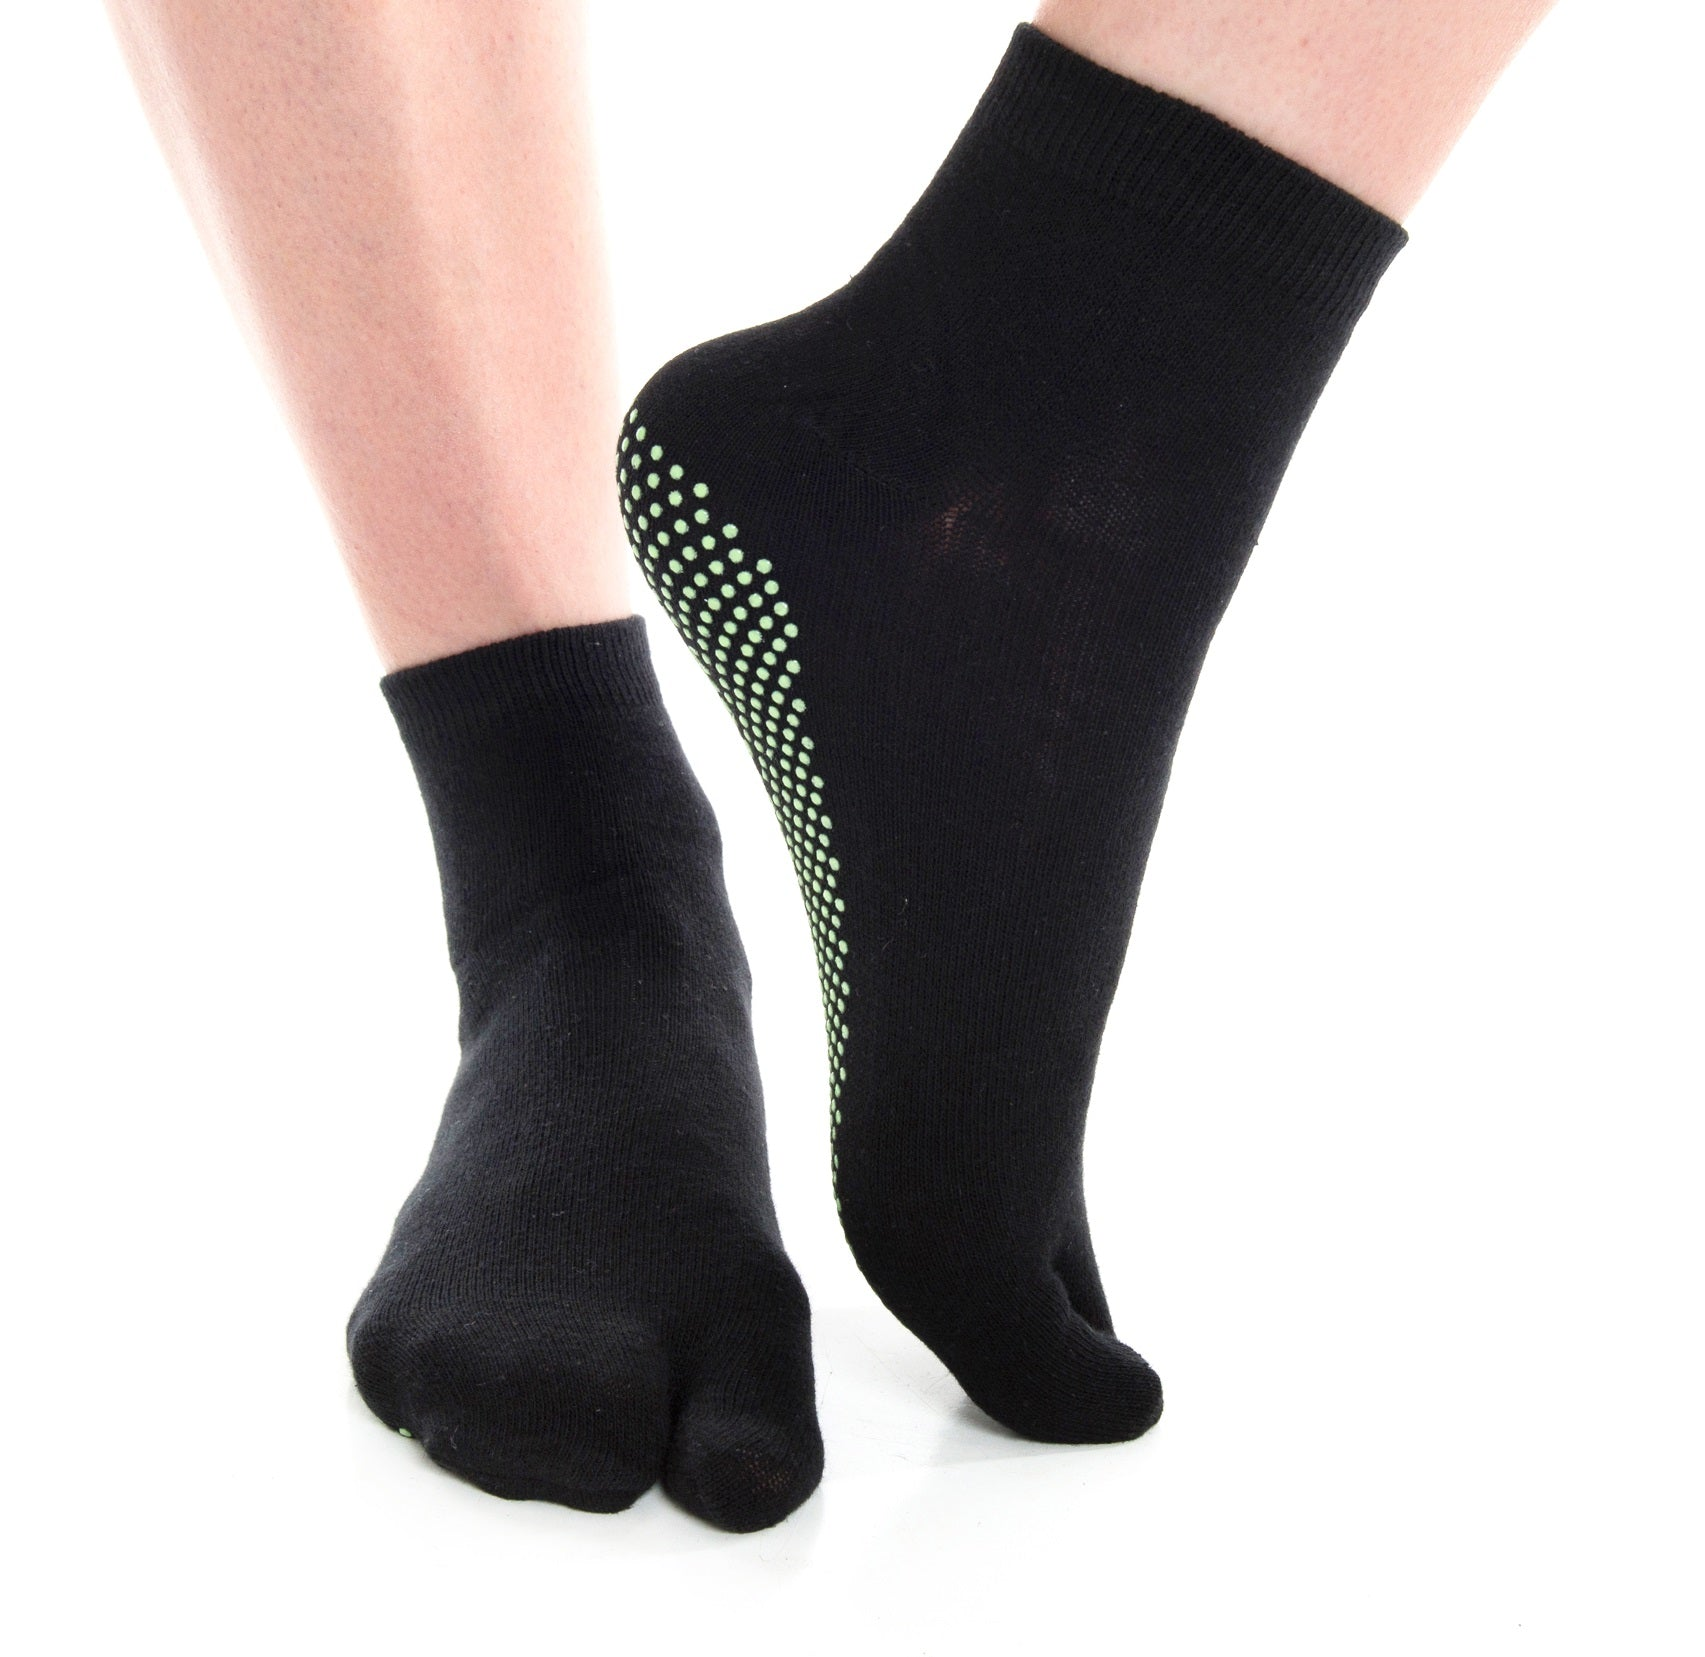 V-Toe Flip Flop Socks Casual Nonskid Socks - Black Solid Big Toe Tabi Socks